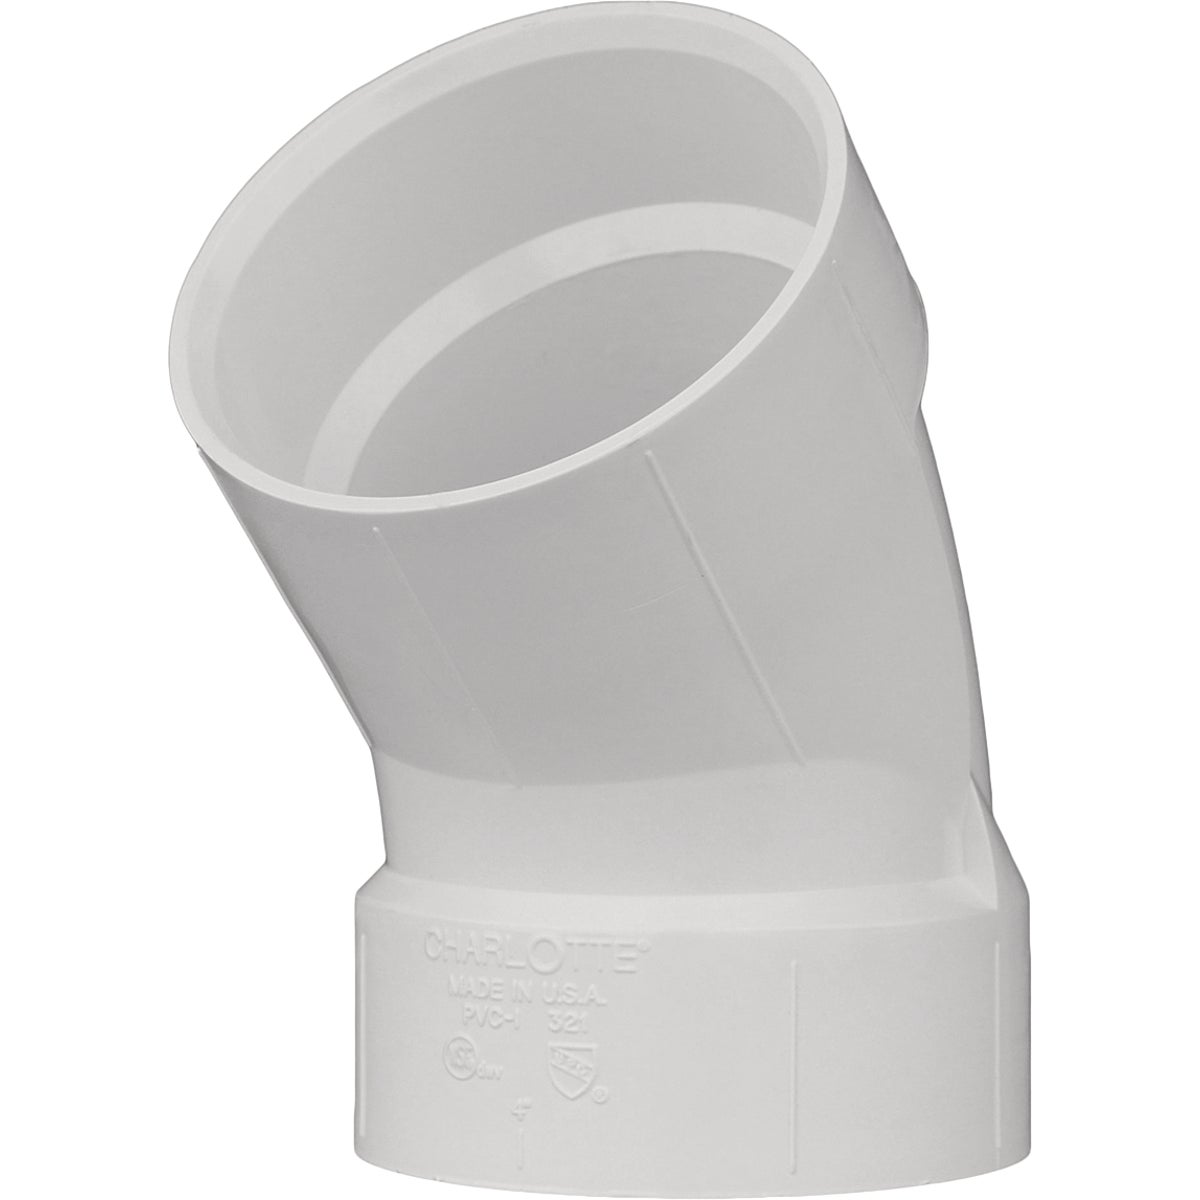 "6"" 45D PVC-DWV ELBOW - 70660 by Genova Inc  Pvc Dwv"